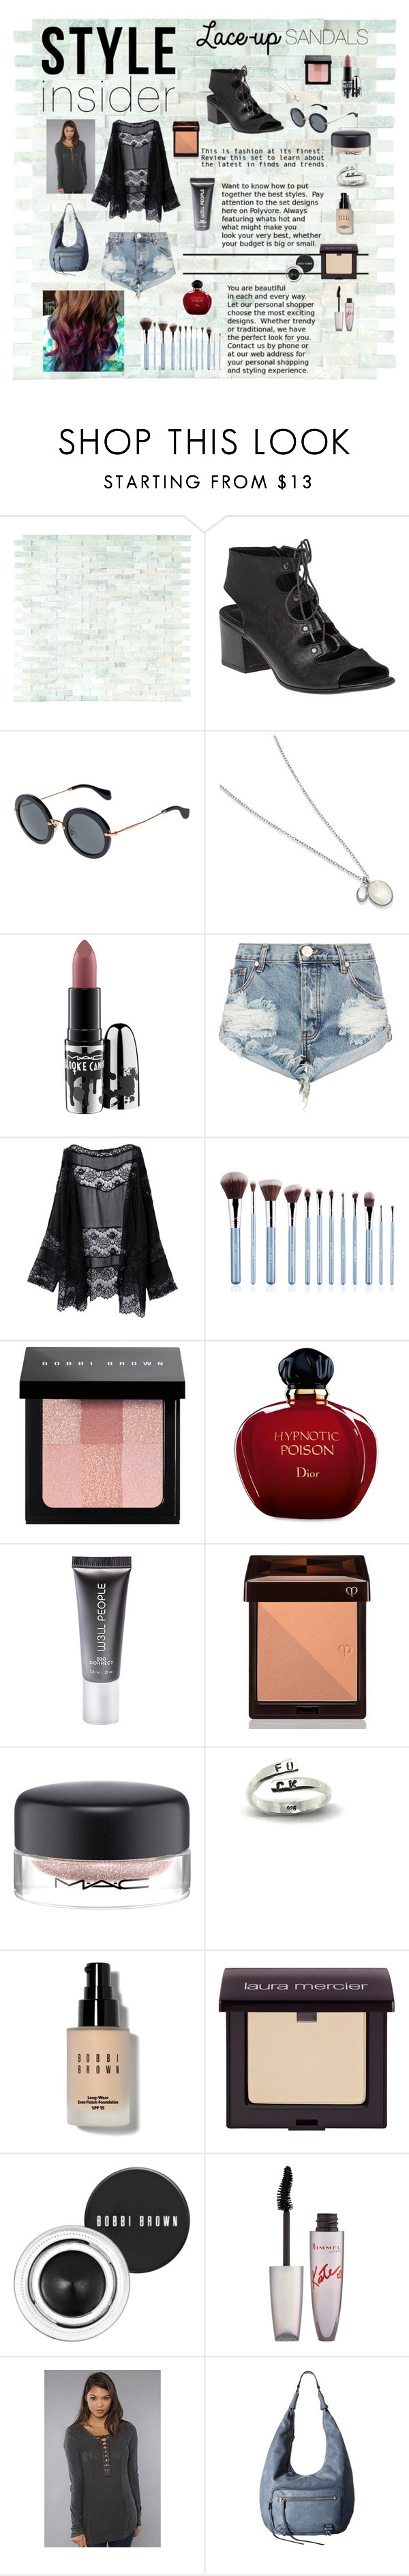 """""""Lace up sandals #polyvorecontest #laceupsandals #styleinsider"""" by izzy-wylde on Polyvore featuring 275 Central, Miu Miu, MAC Cosmetics, One Teaspoon, Bobbi Brown Cosmetics, Christian Dior, W3LL People, Clé de Peau Beauté, Laura Mercier and Rimmel"""